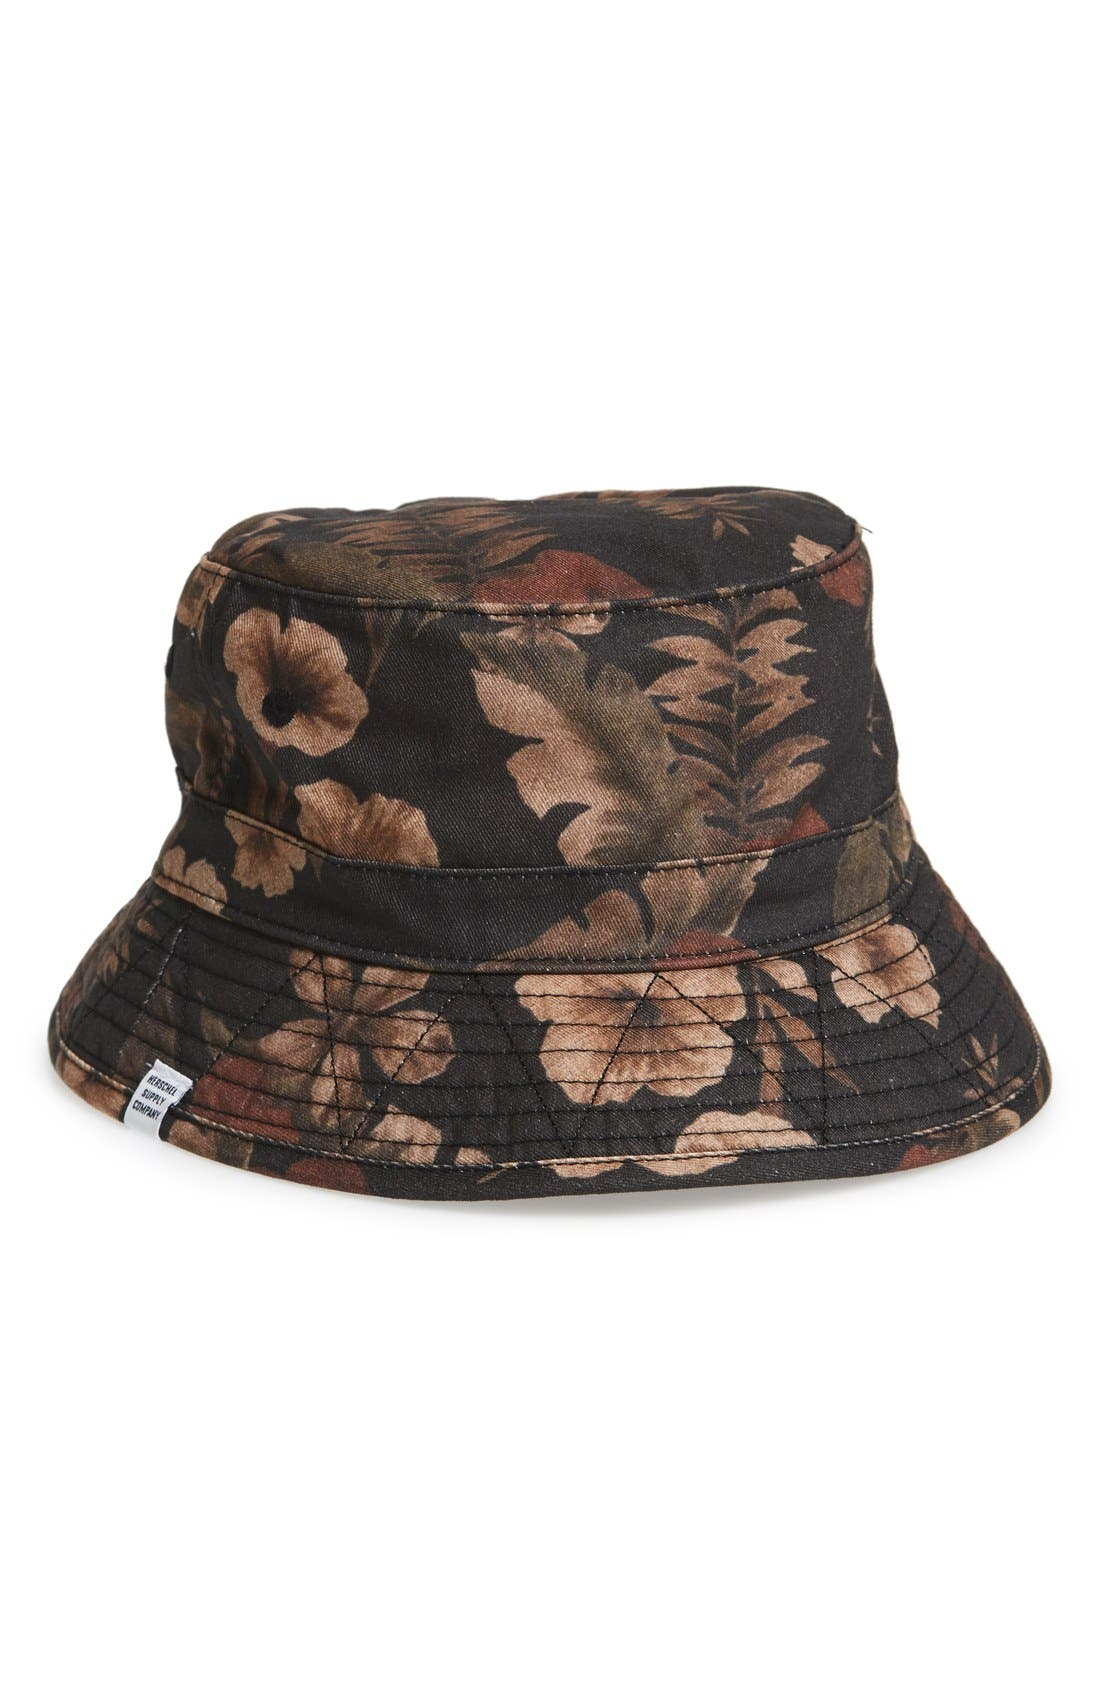 Alternate Image 1 Selected - Herschel Supply Co. 'Creek' Bucket Hat